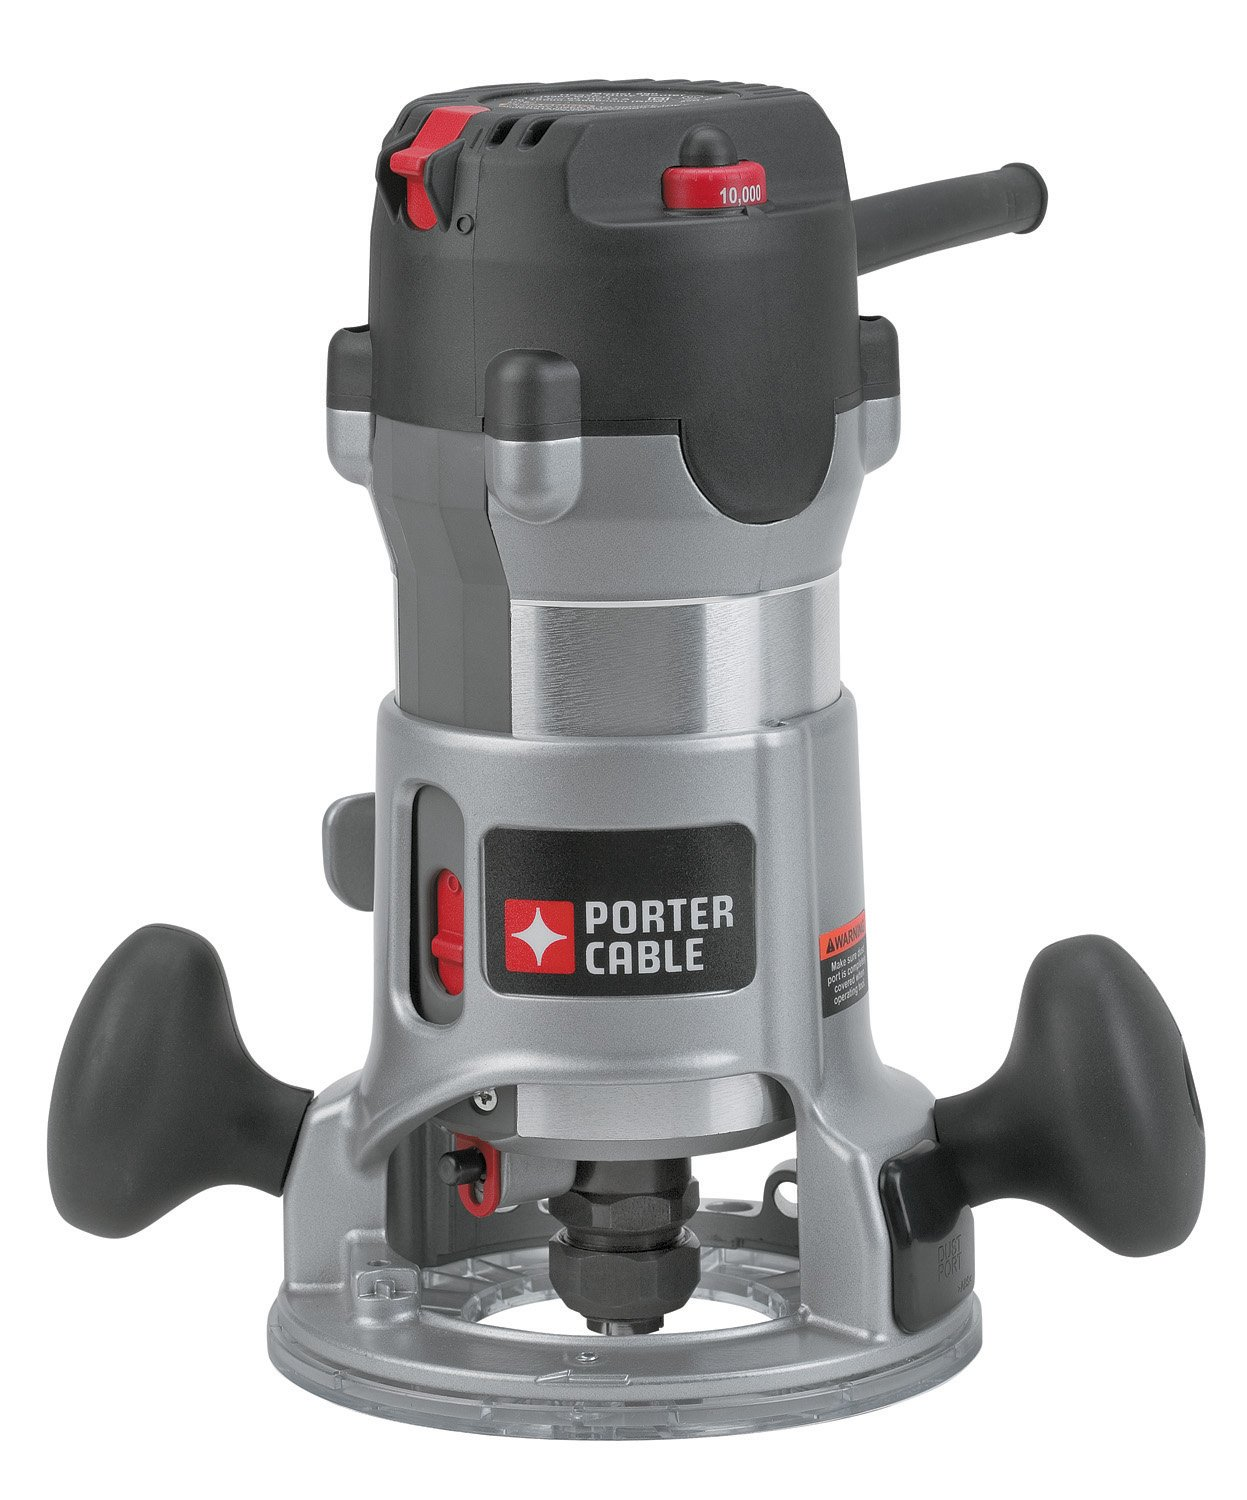 porter cable 892 2 1 4 horsepower router power routers amazon com rh amazon com Porter Cable 690 Porter Cable 890 Router Motor